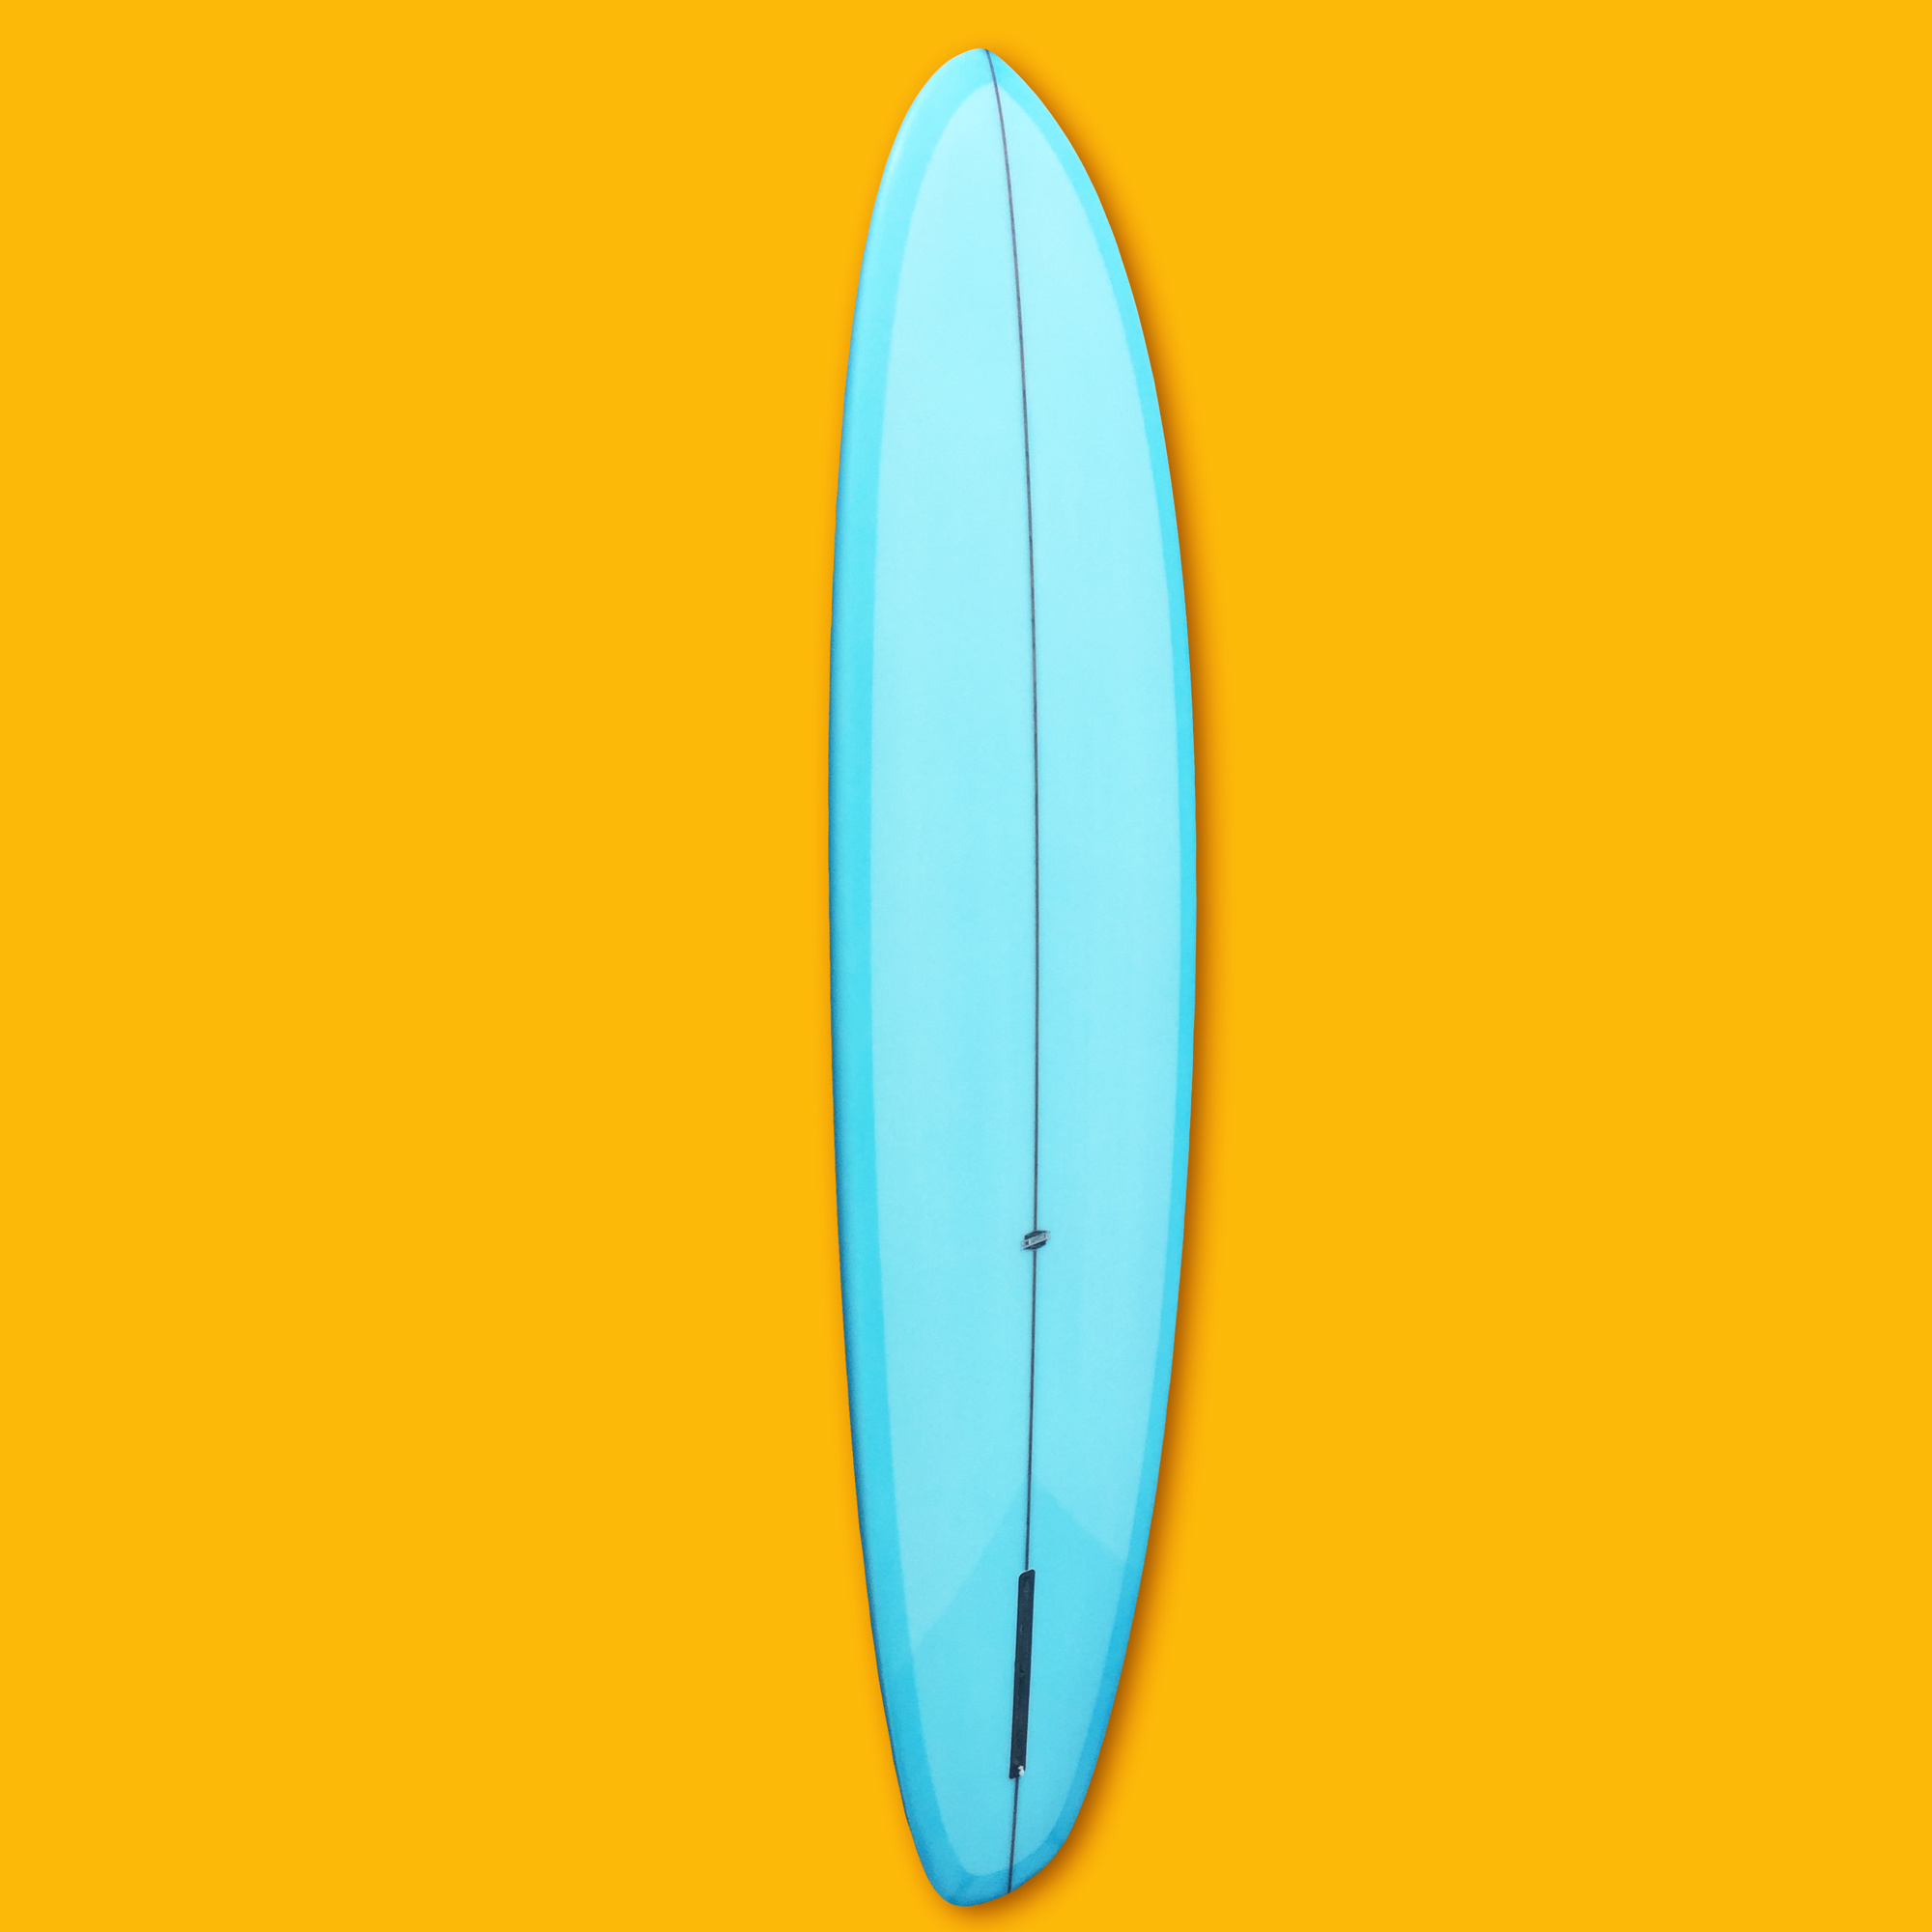 Troy Elmore Submarine 7'2 // SOLD